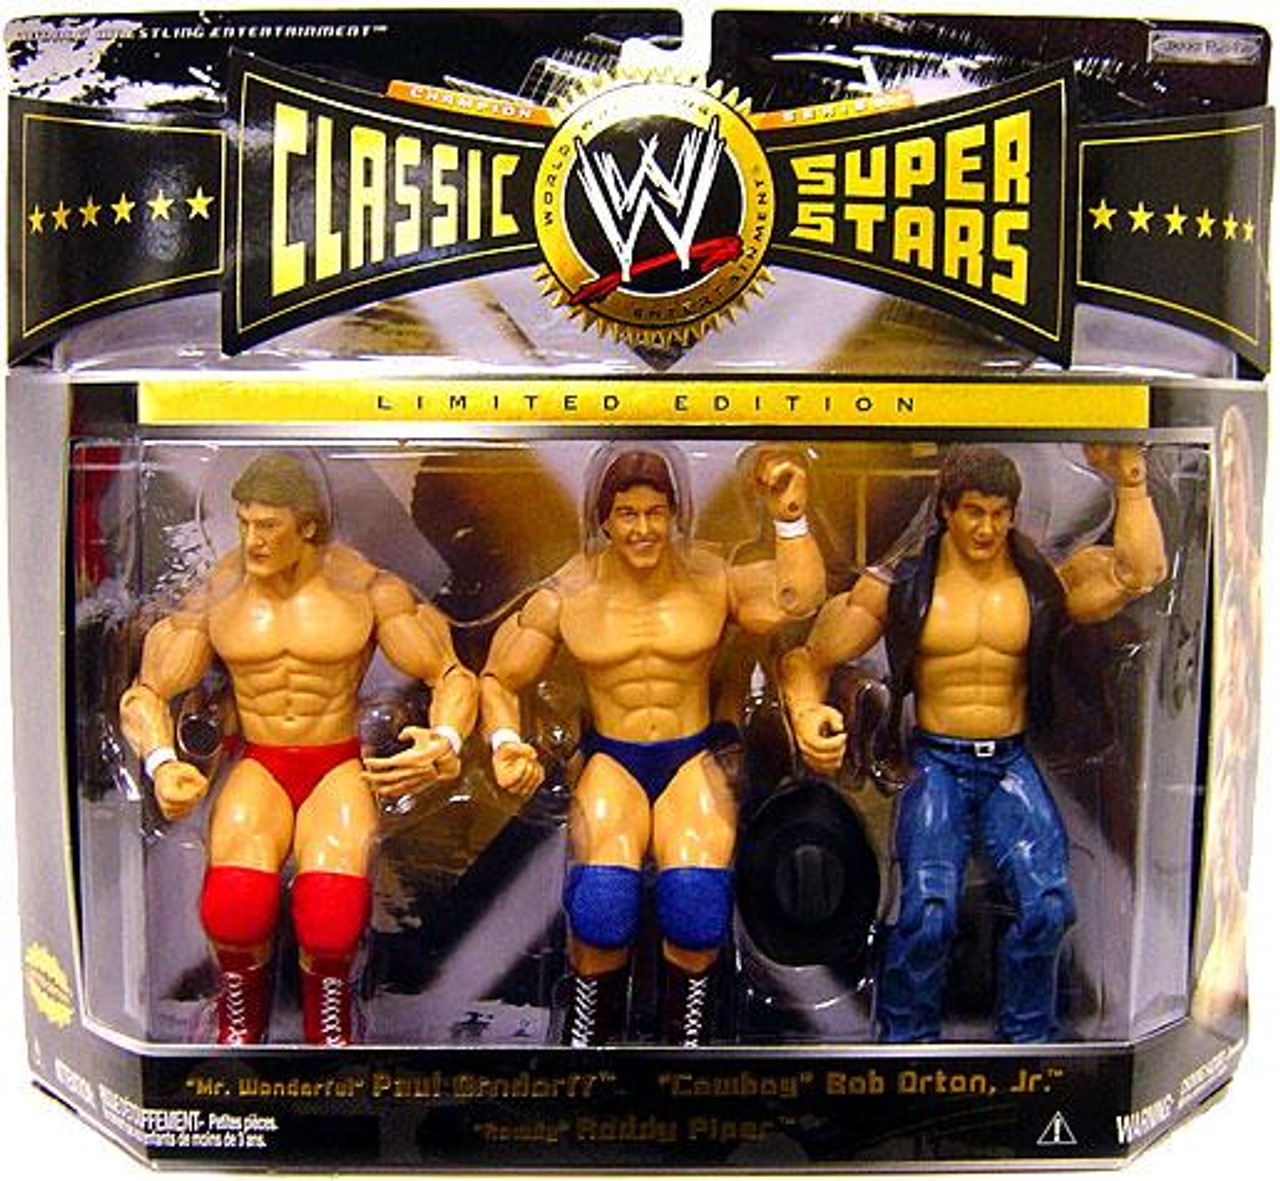 WWE Wrestling Classic Superstars Series 6 Rowdy Roddy Piper, Paul Orndorff & Bob Orton Jr. Exclusive Action Figure 3-Pack